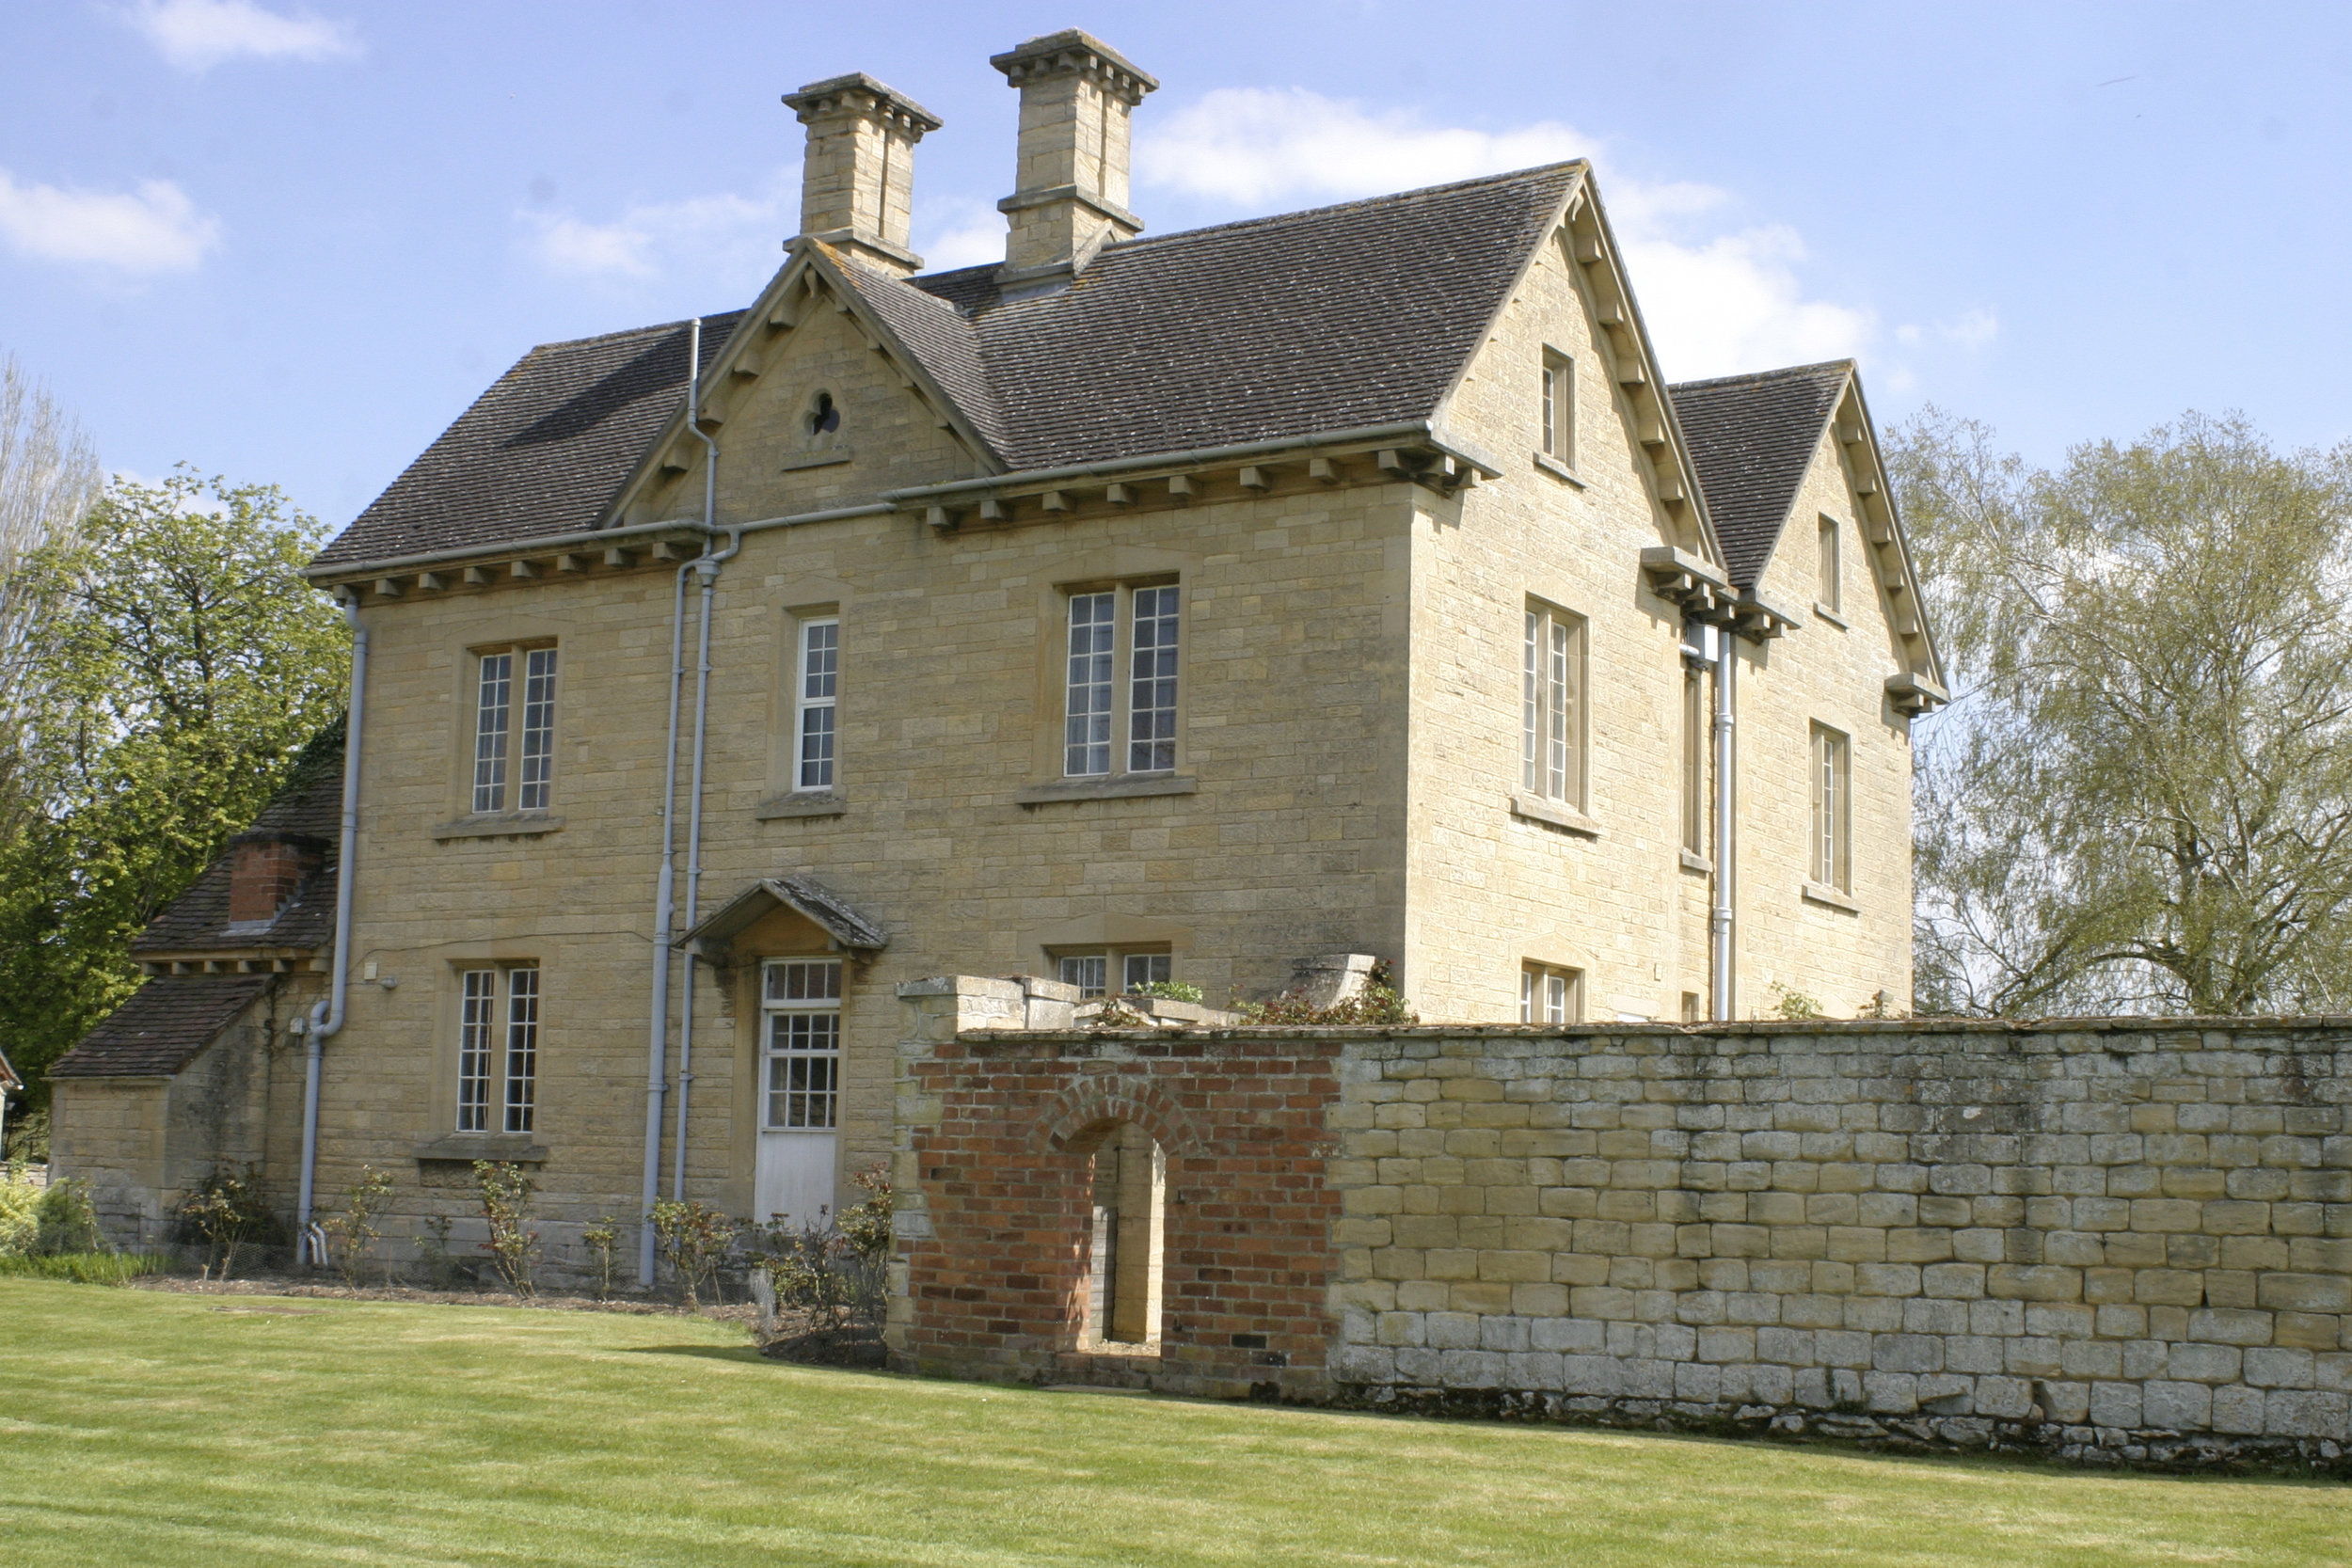 Side view from gardens